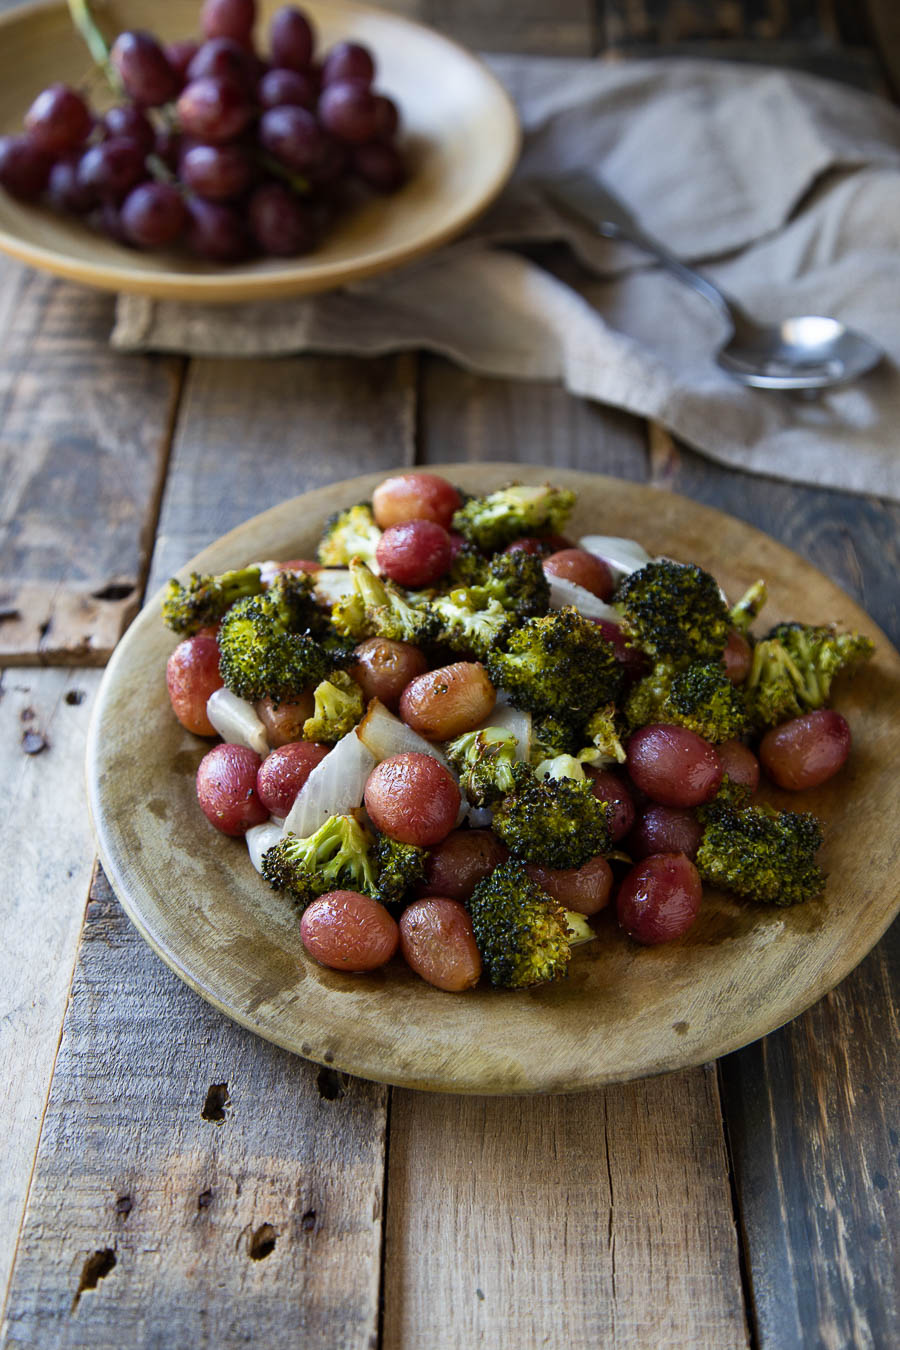 Roasted Broccoli Salad with Grapes